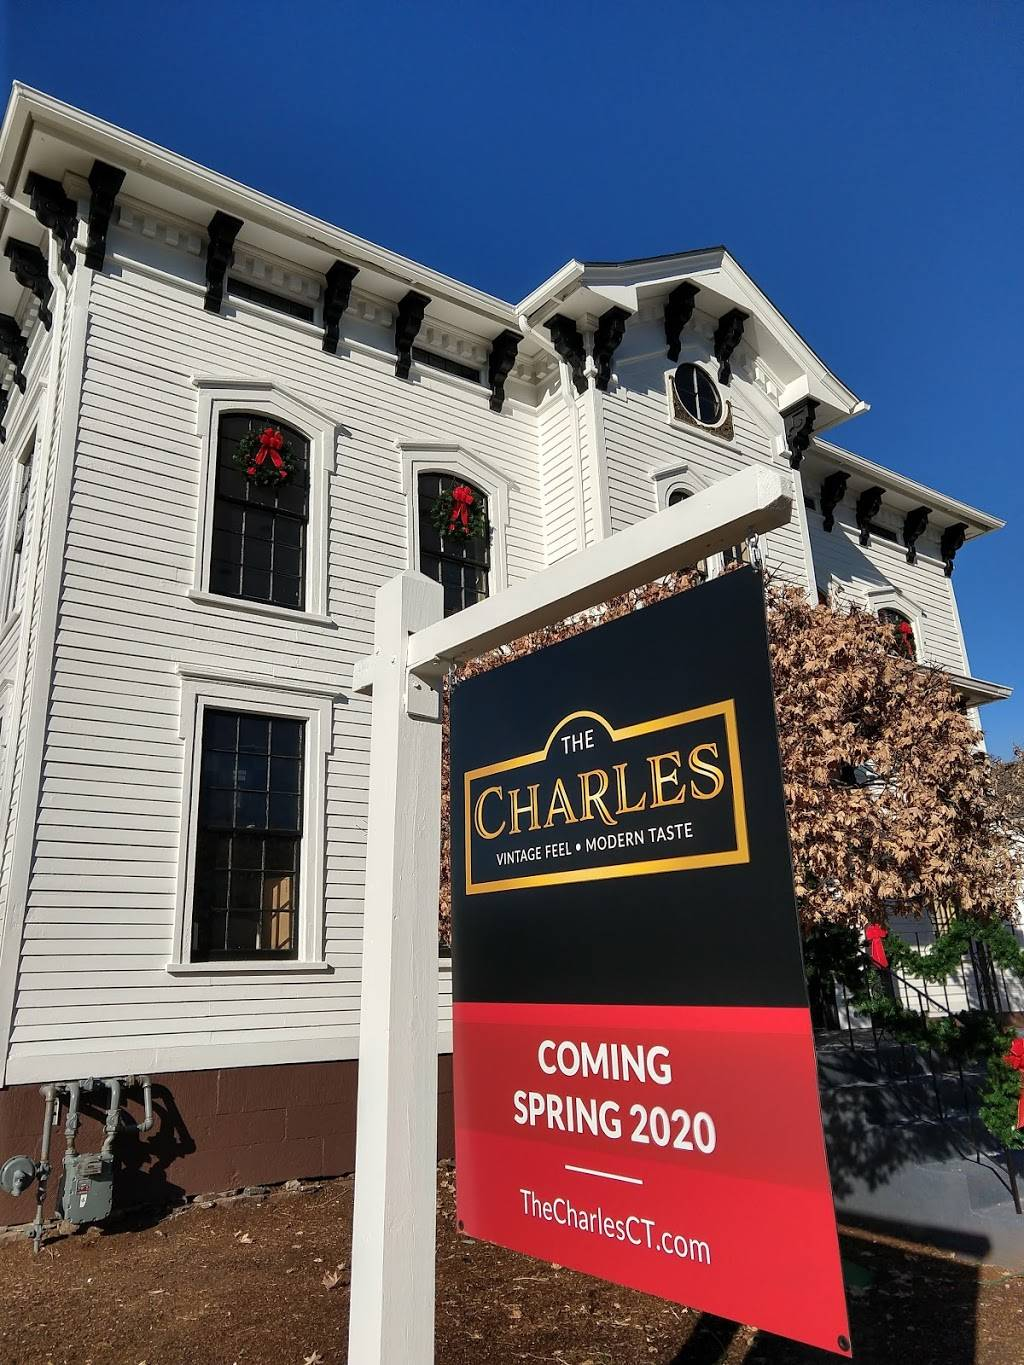 The Charles | restaurant | 161 Main St, Wethersfield, CT 06109, USA